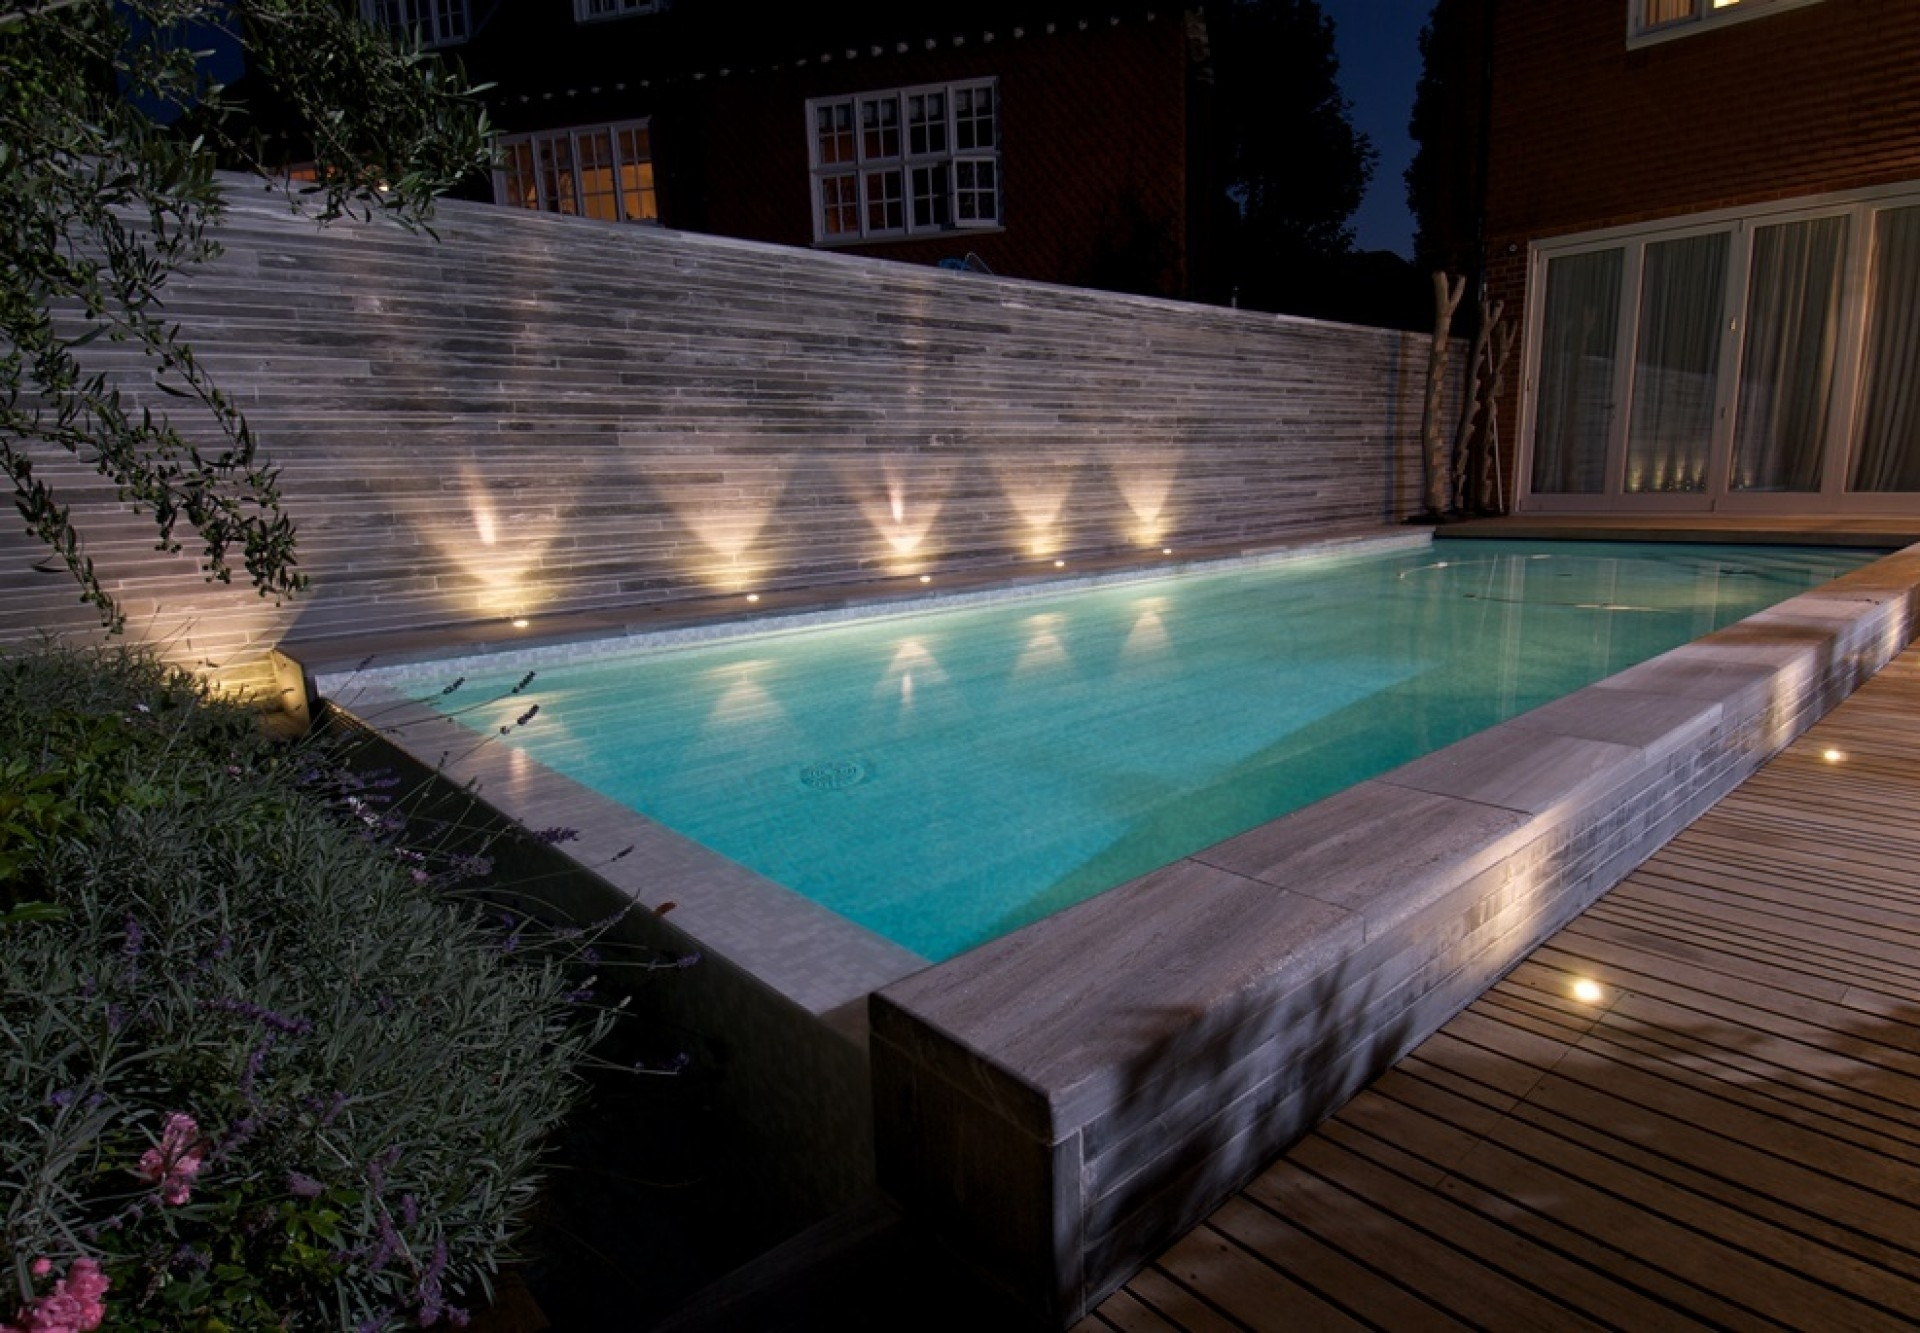 Photos: Outside Lights For Pool Area, – Diy Home Design & Furniture In Outdoor Lanterns For Poolside (View 18 of 20)